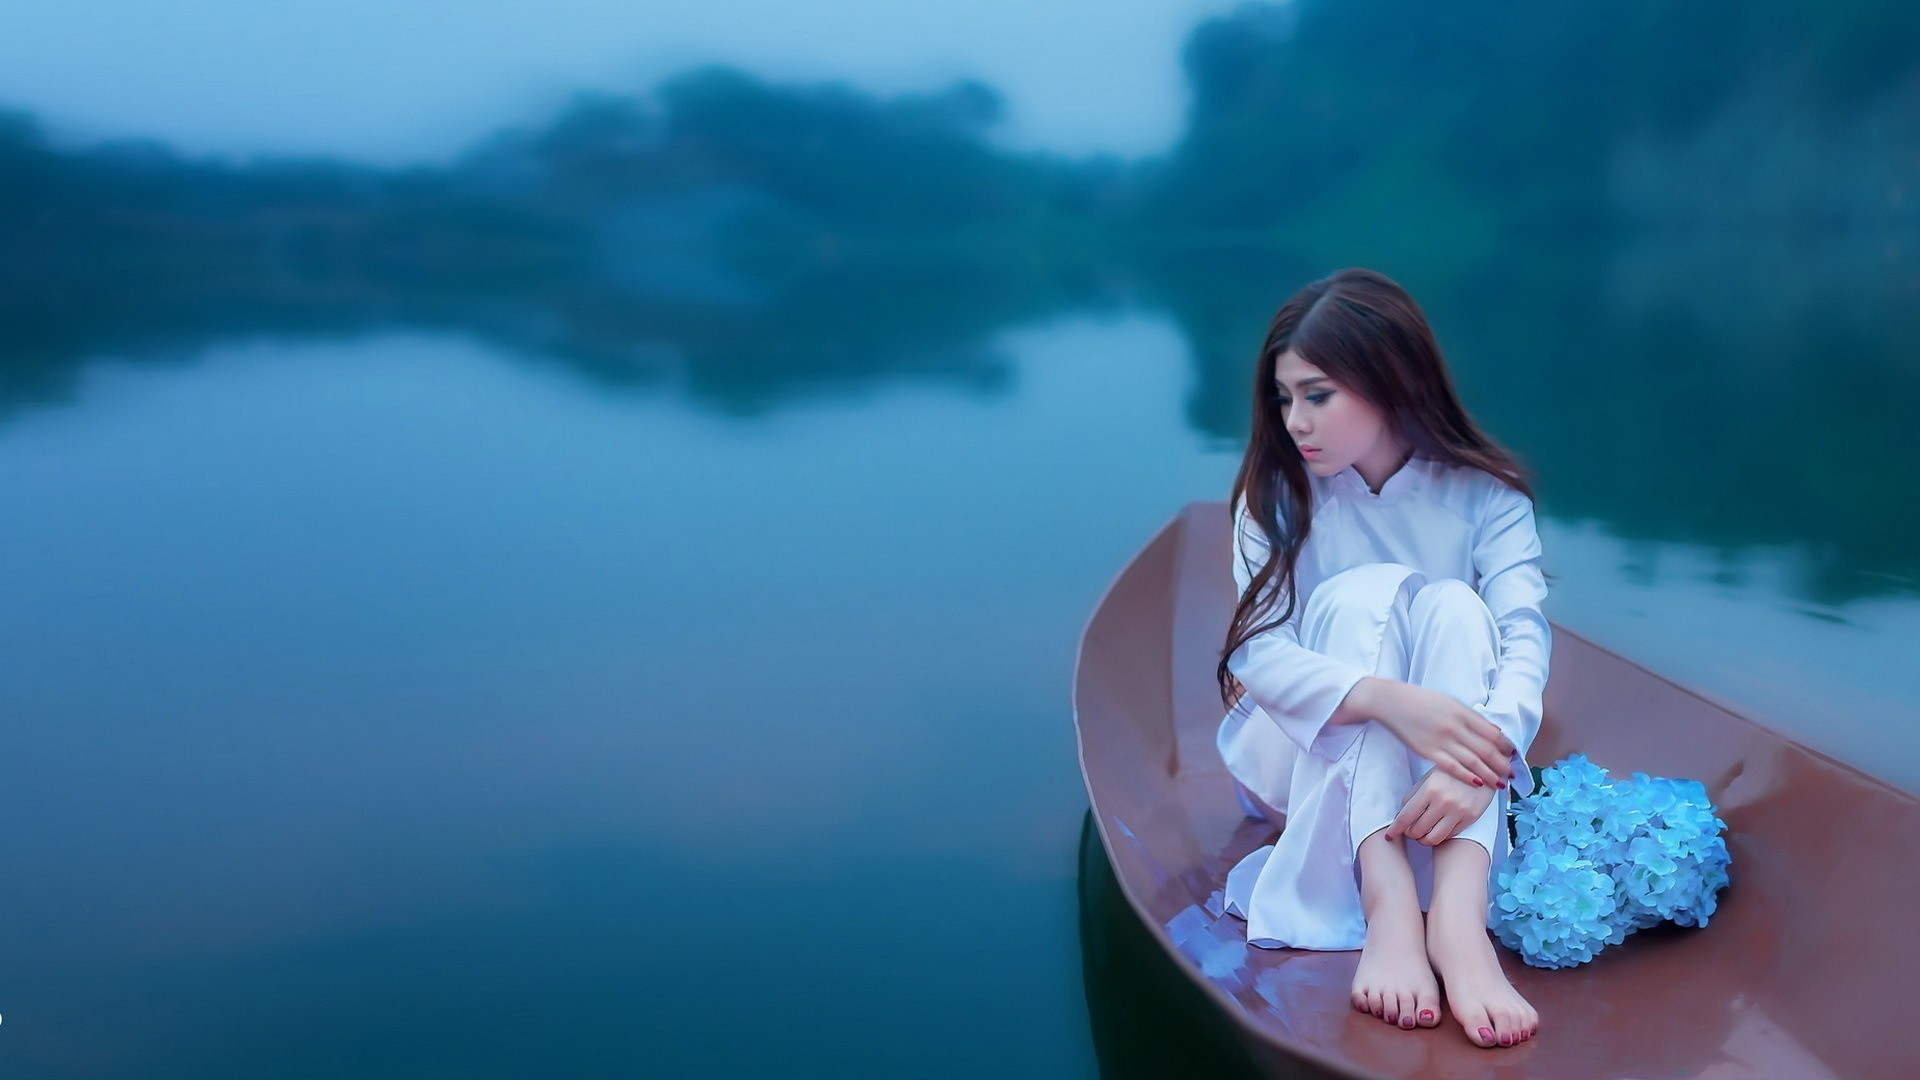 woman on boats wallpaper (64+ images)